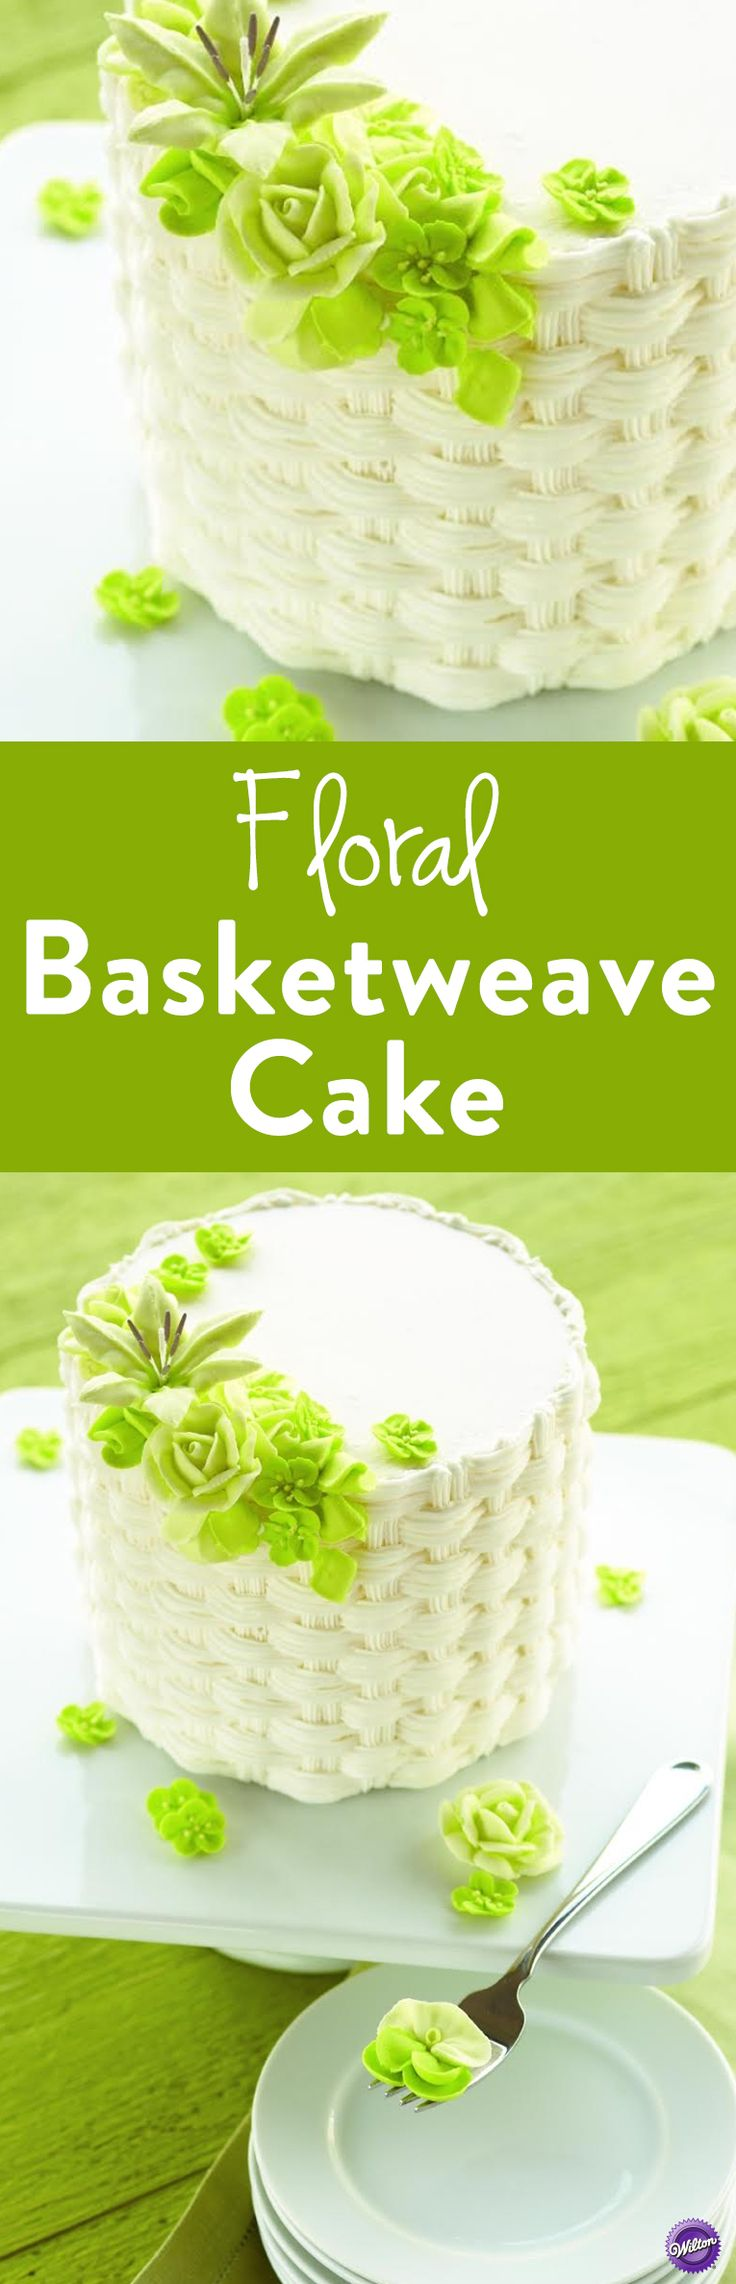 Floral Basketweave Cake - Learn how to make a basketweave cake with lovely blooms in soft shades of green. Serve this cake for any spring or summertime celebration or even Mother's Day or anniversary.